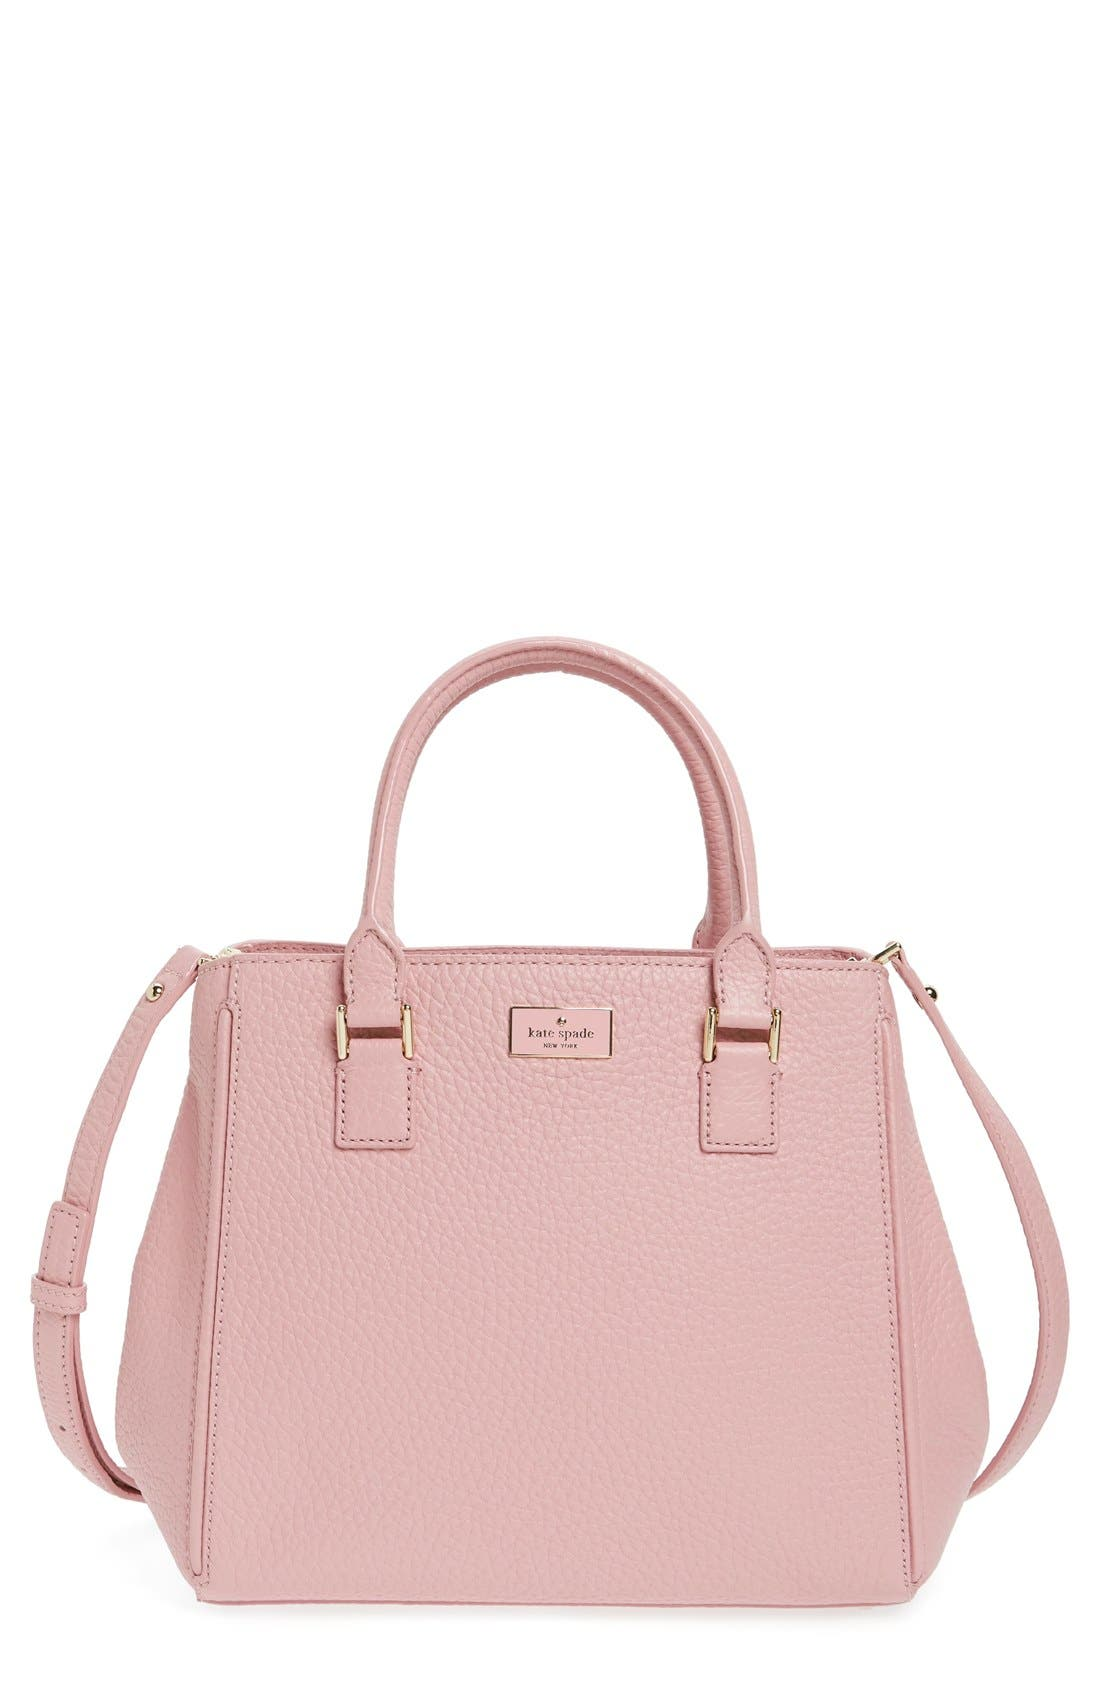 Main Image - kate spade new york 'prospect place - maddie' grainy leather satchel